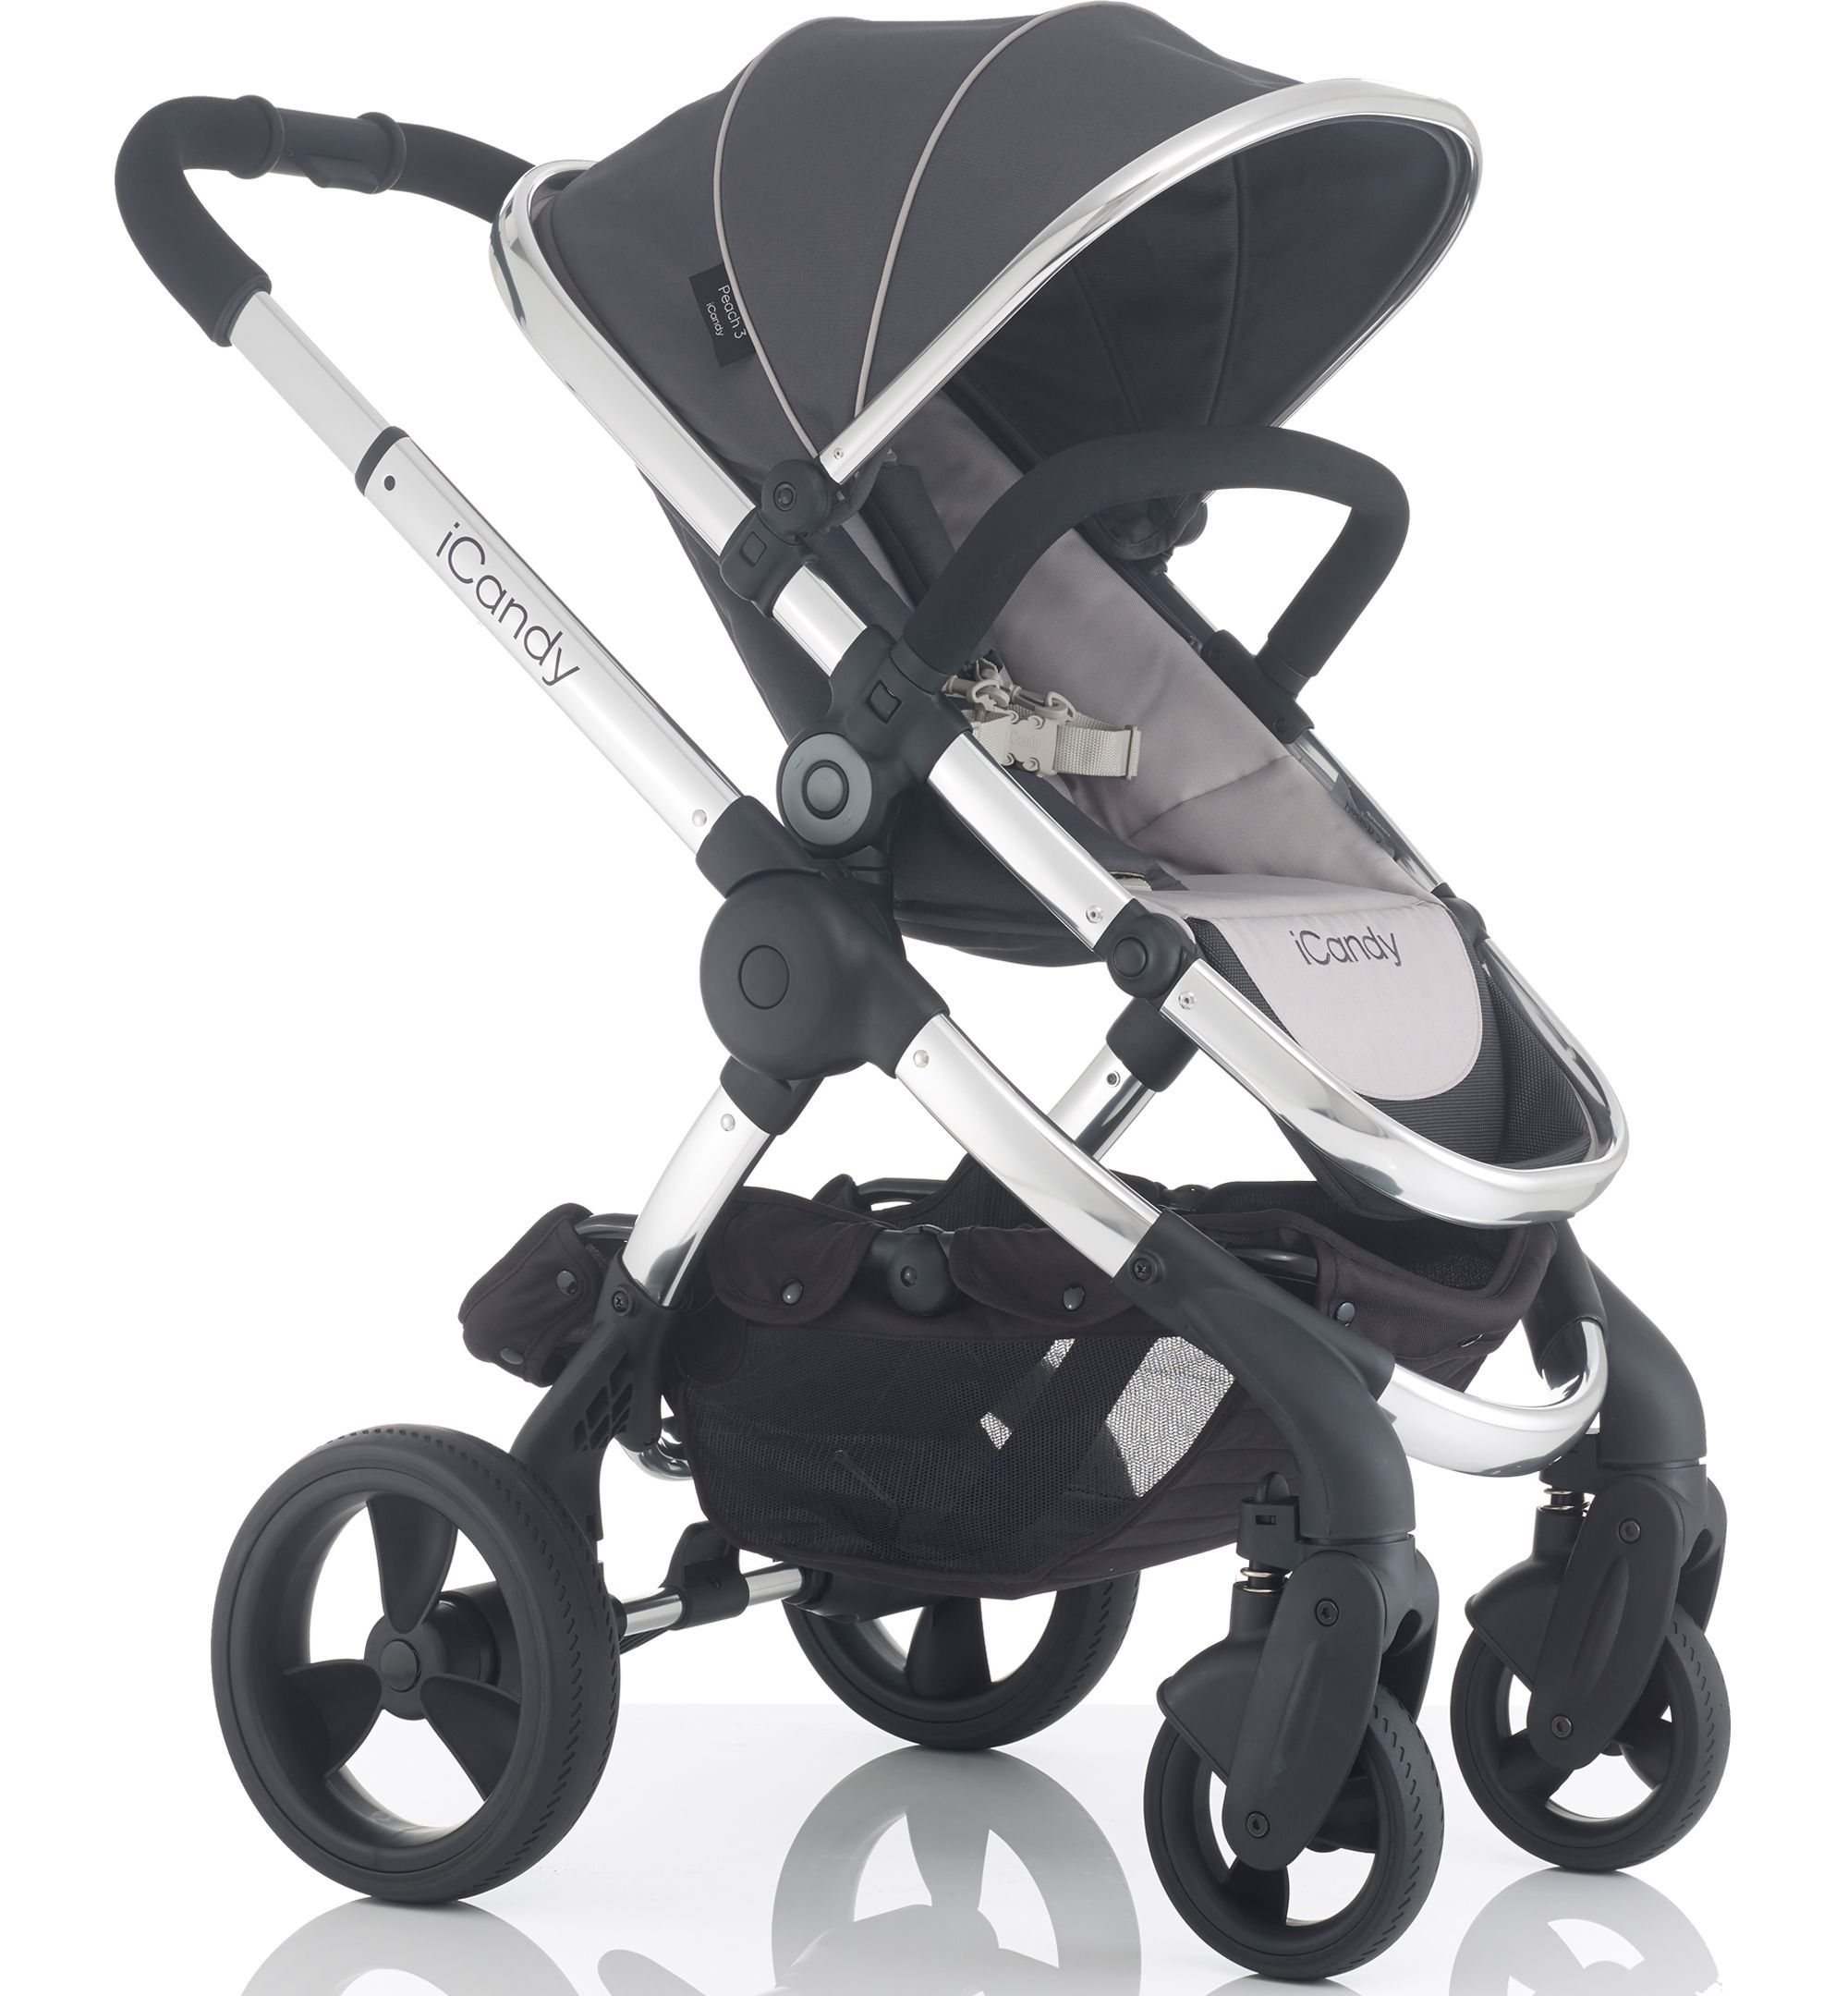 iCandy Peach 3 Stroller Truffle Baby prams, Used strollers